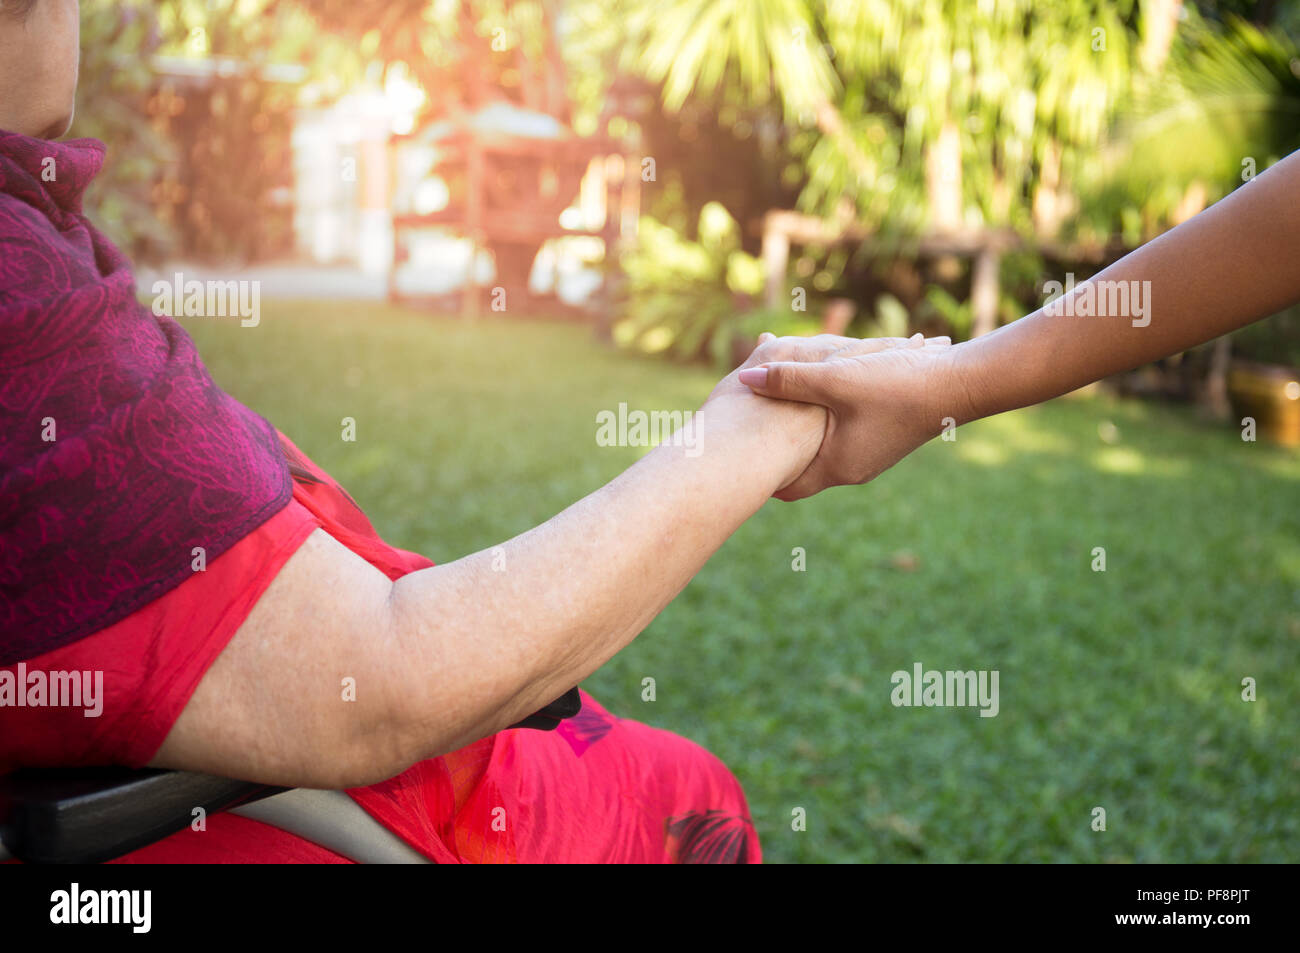 Caretaker pushing senior woman in wheel chair  - Stock Image